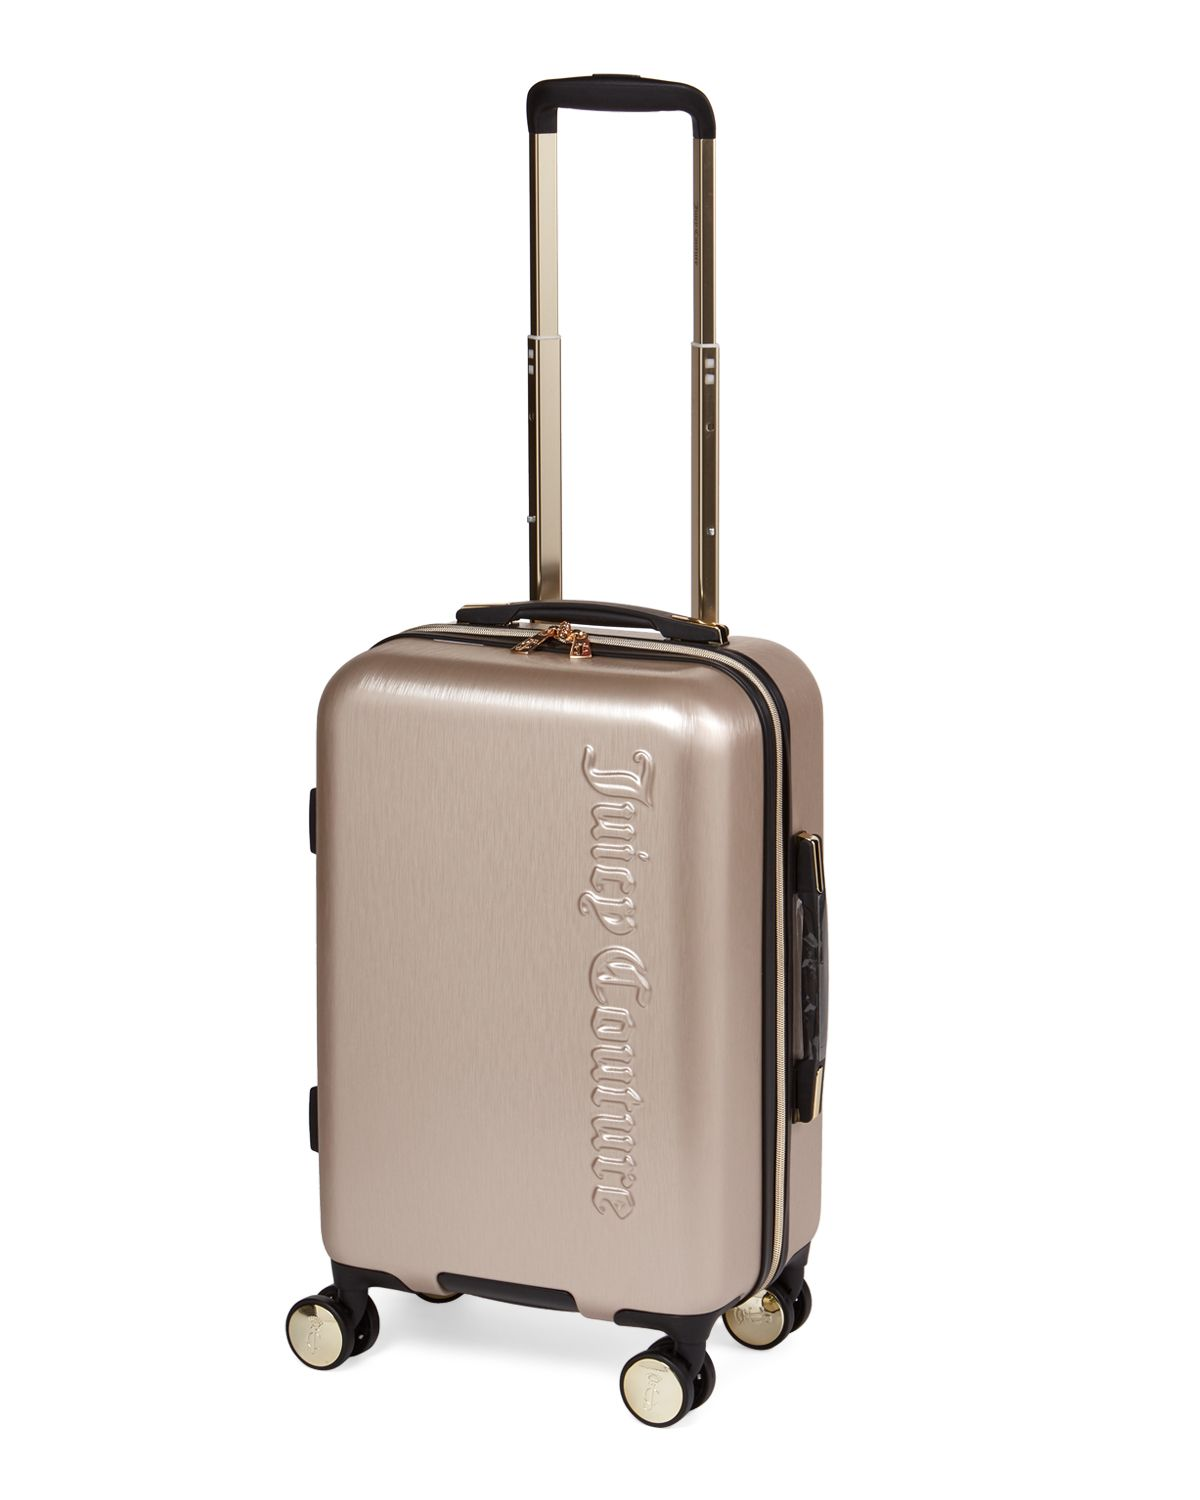 00fea9e96363 Juicy Couture 21? Gold Juicy Upright Spinner | *Luggage & Bags* in ...